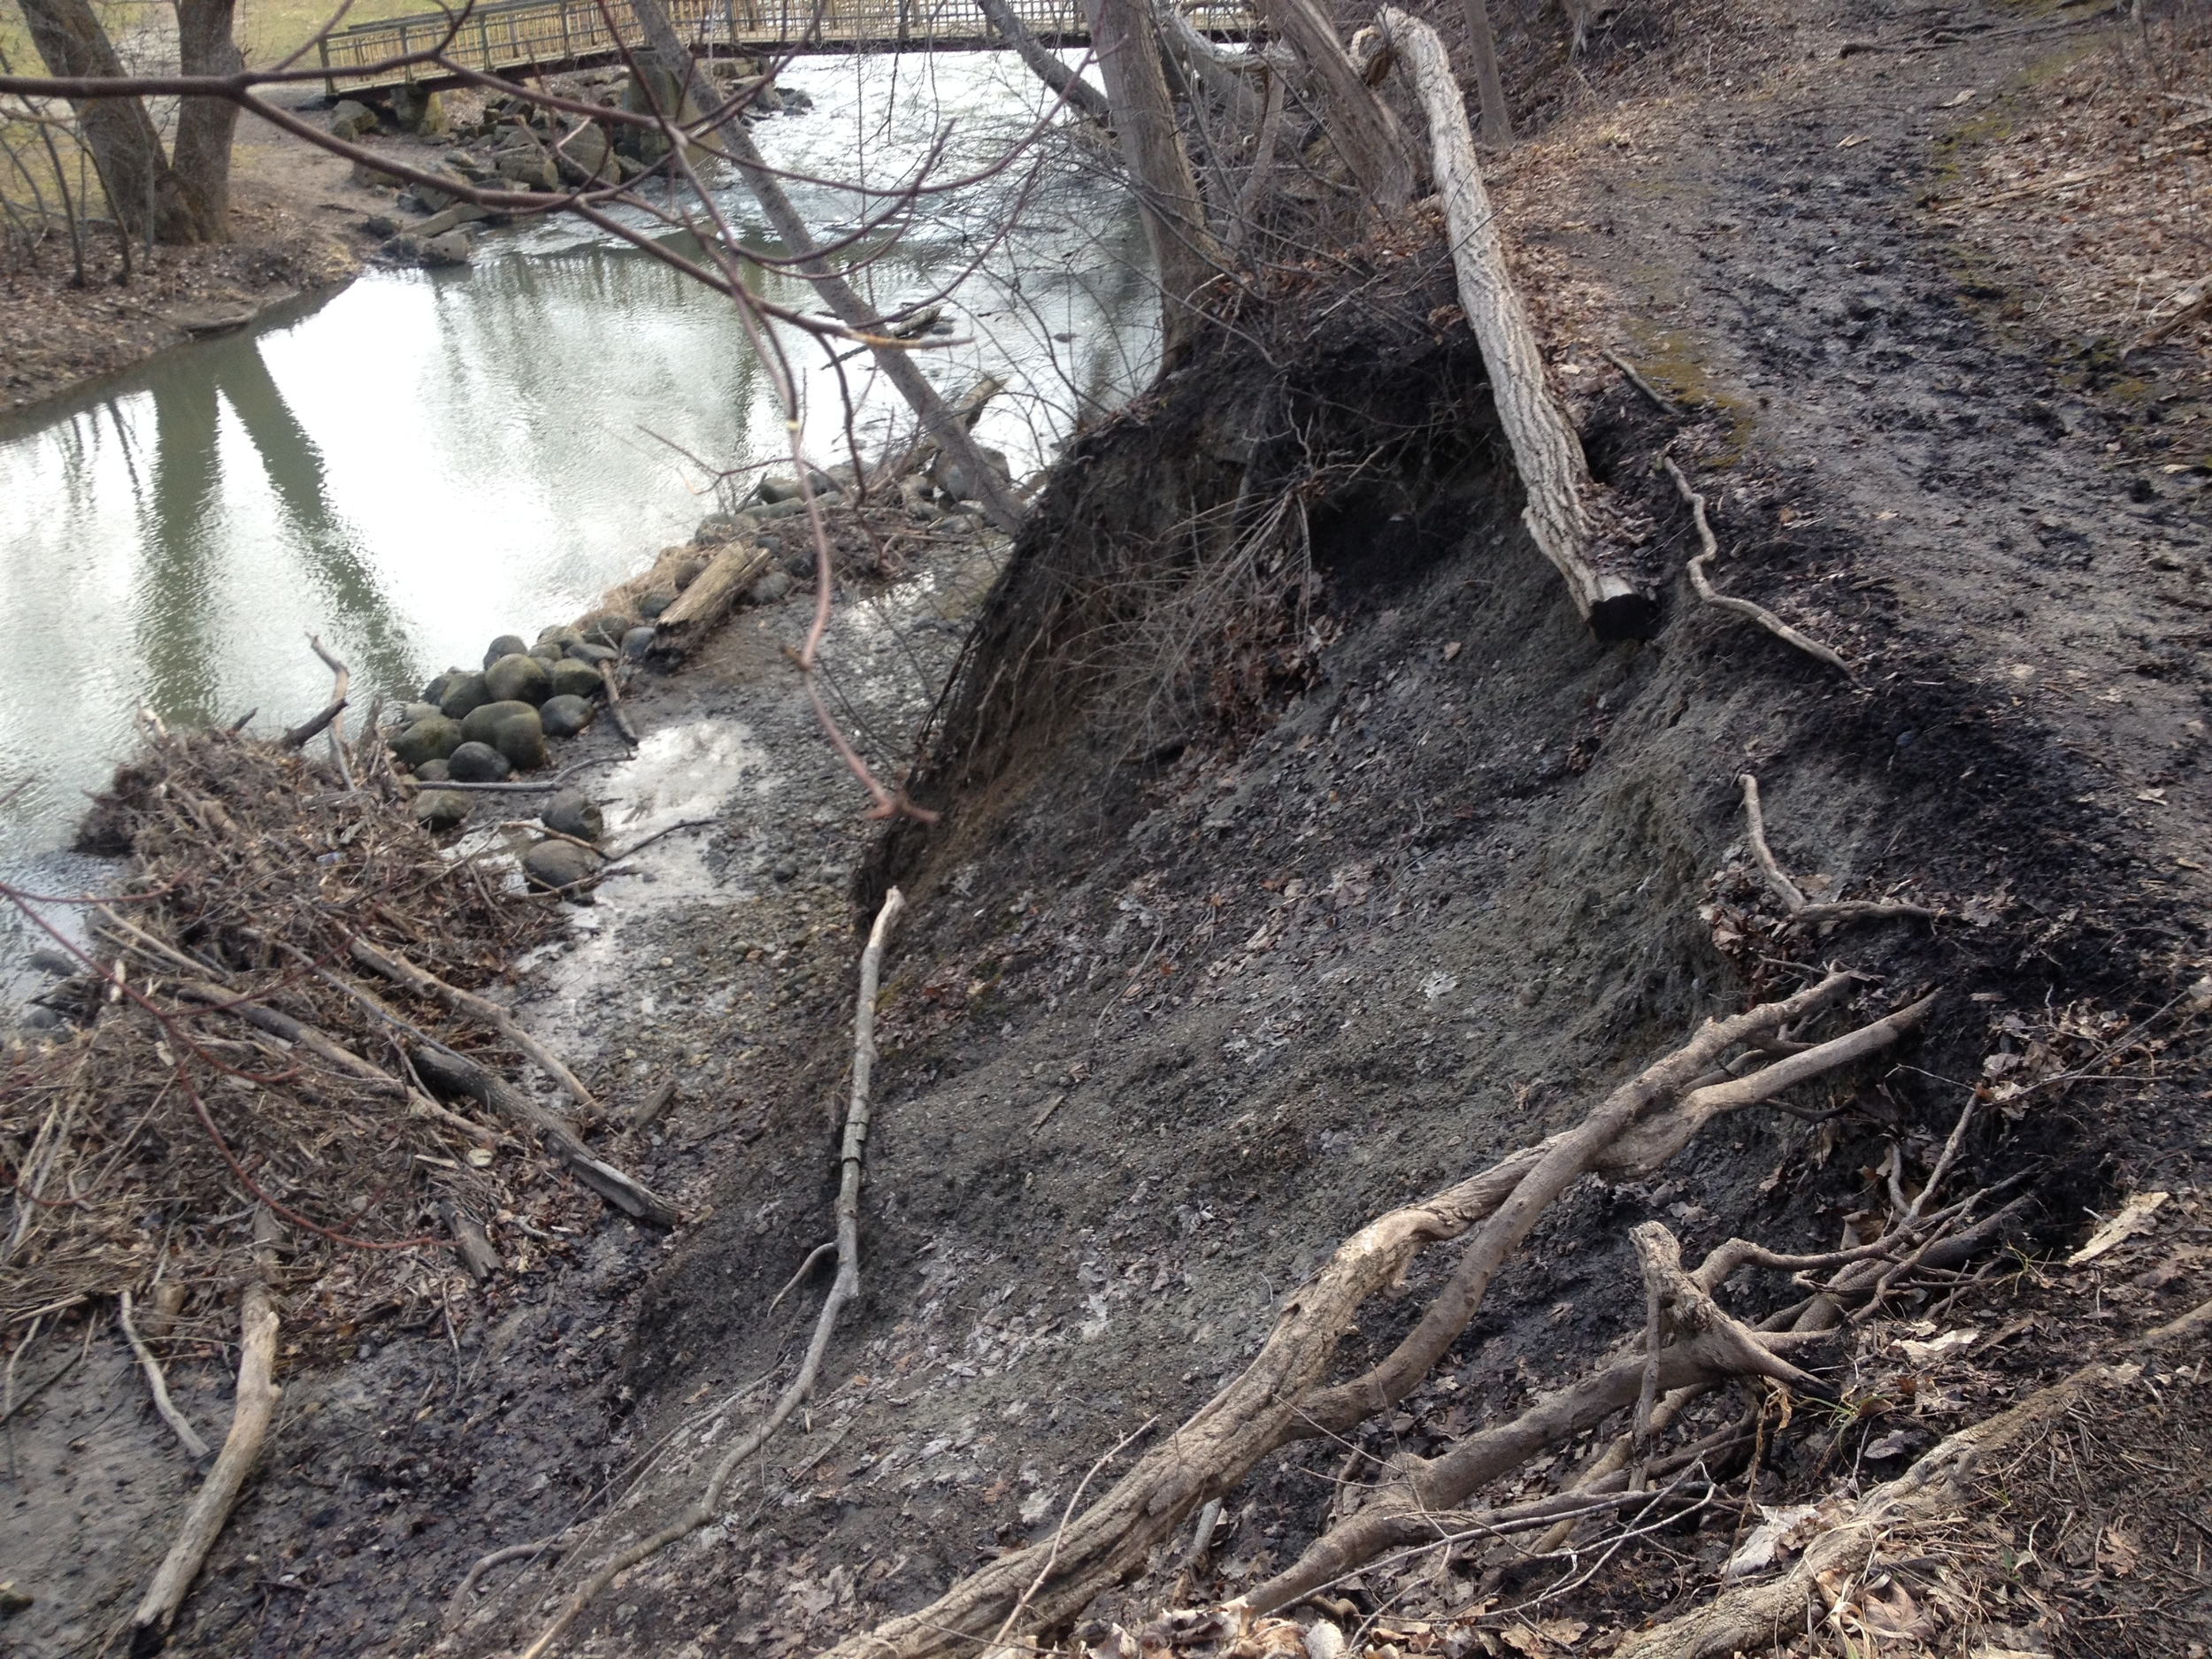 Sloughing banks add sediment to the main branch of the Pike River within Petrifying Springs Park in Kenosha.